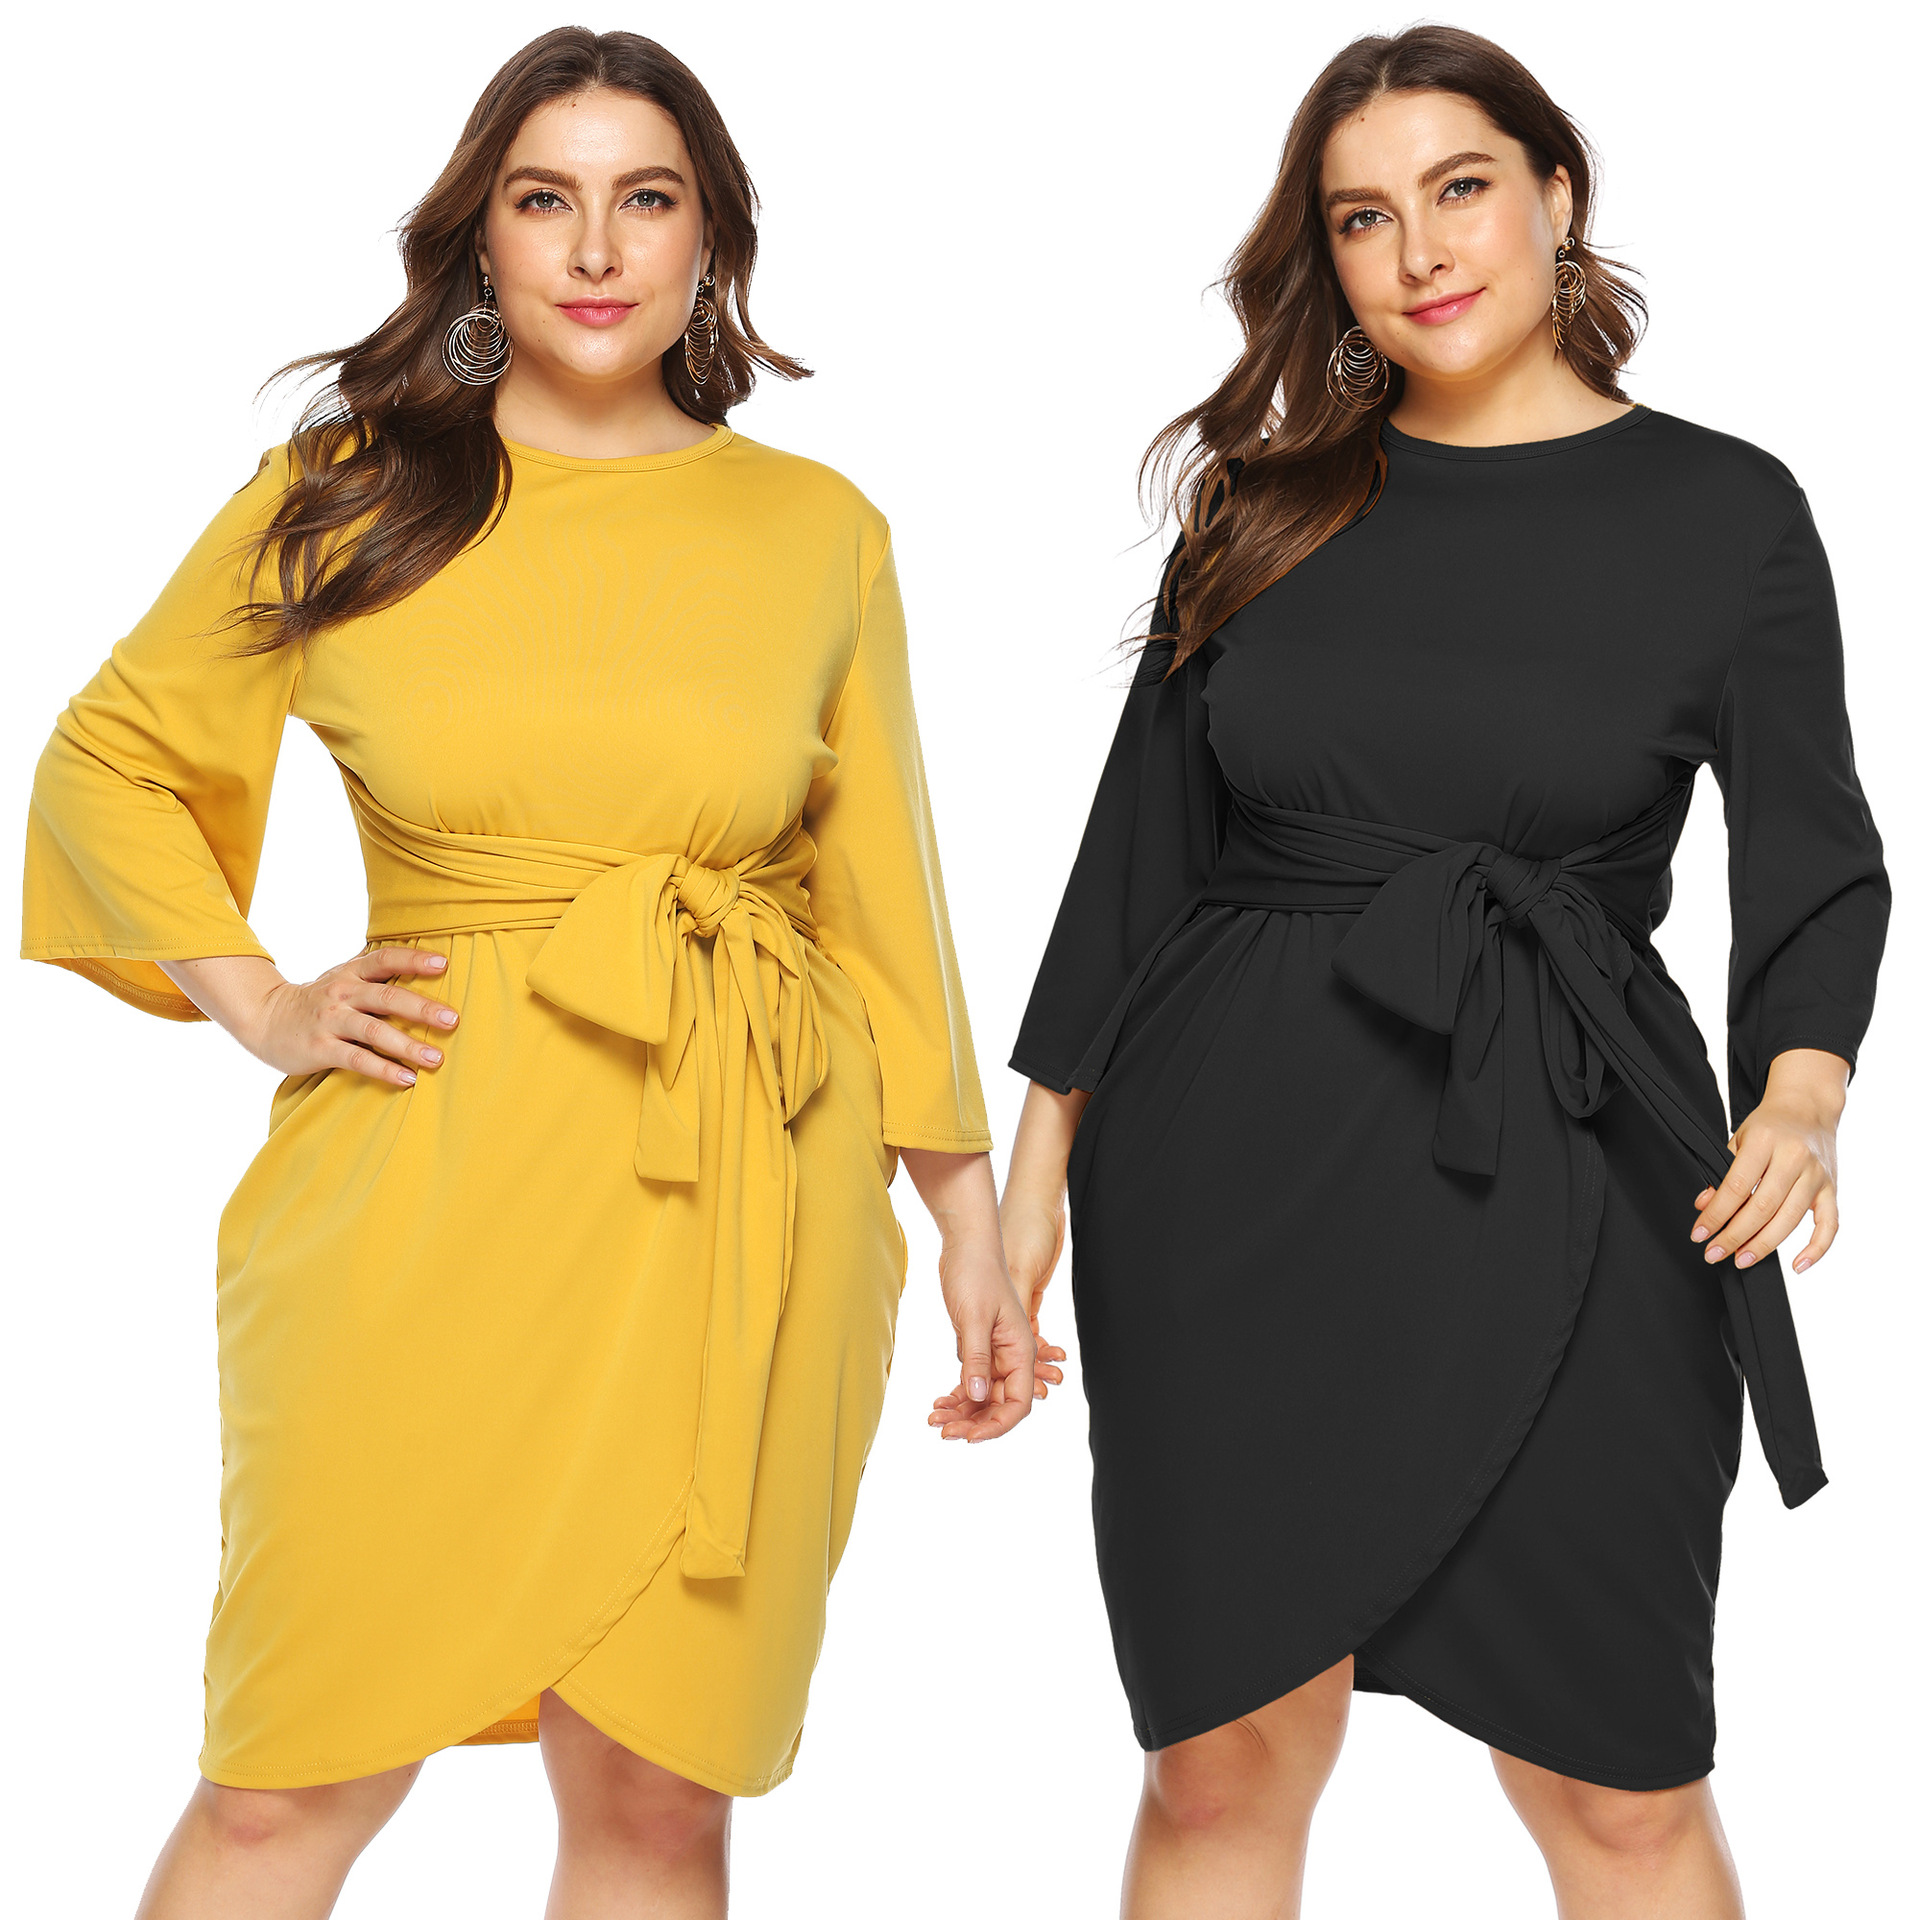 Large Size Dress Irregular Cross Straps Waist Hugging Capri Micro Bell Sleeve Solid Color Crew Neck Dress Women's A11012